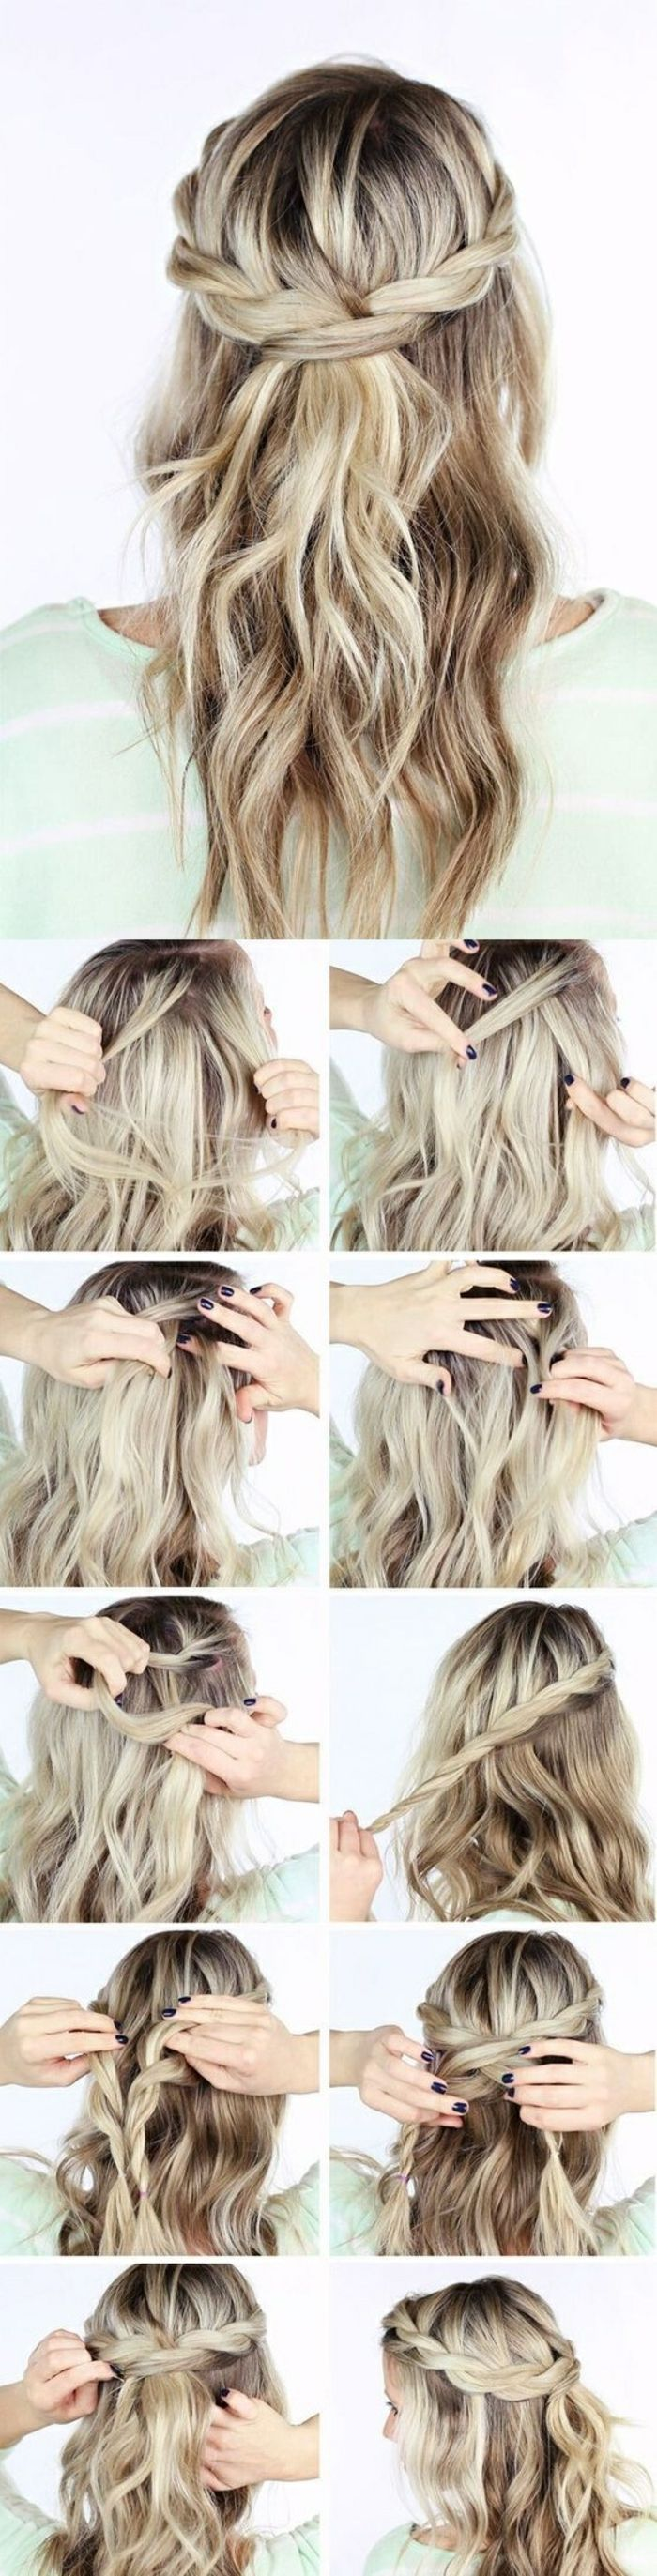 1416 best Frisuren images on Pinterest